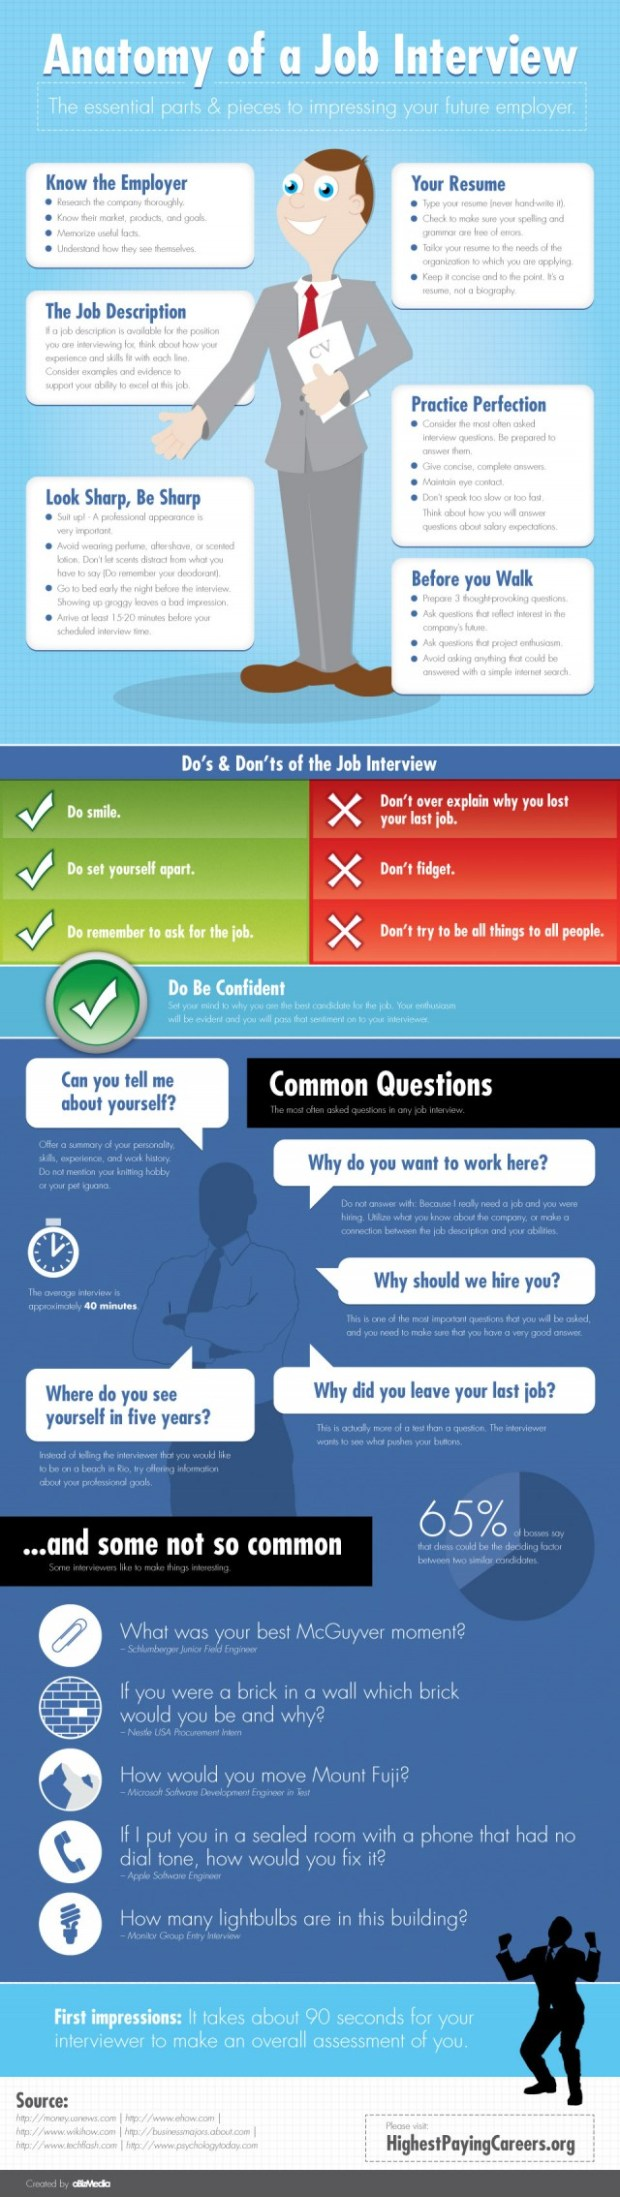 shortlisted tips for facing an Interview